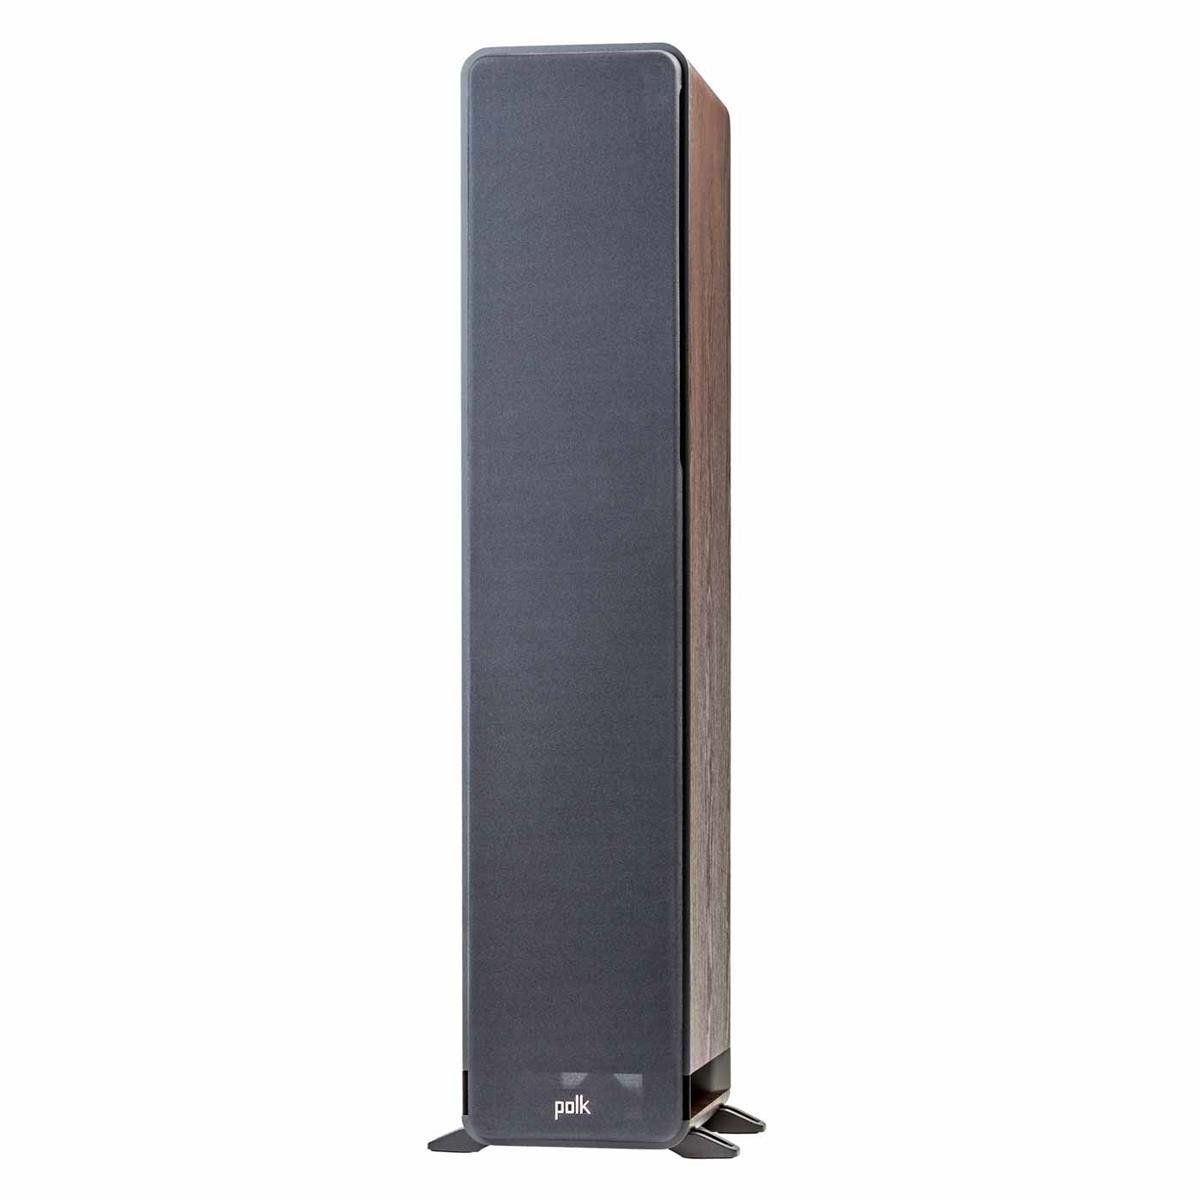 Polk Audio Signature Series S50 American Hi-Fi Home Theater Small Tower Speaker (Classic Brown Walnut) by Polk Audio